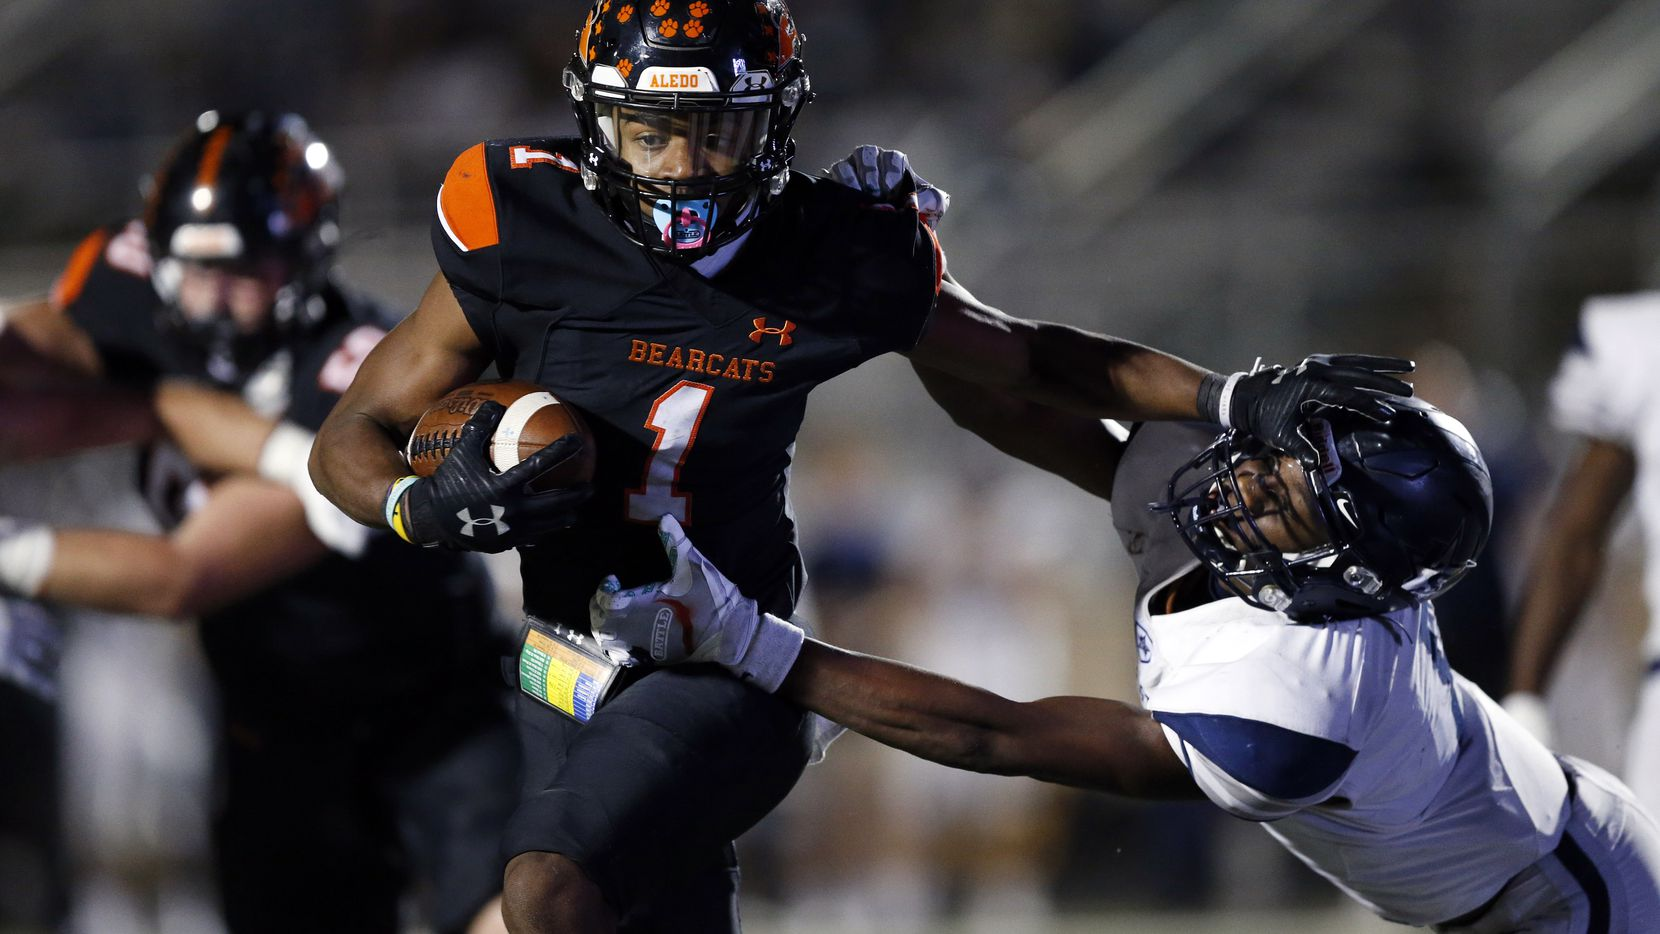 Aledo receiver JoJo Earle (1) gives a stiff-arm to Frisco Lone Star's Devin Turner during a game on October 2 2020. Aledo won 34-32. (Tom Fox/The Dallas Morning News)